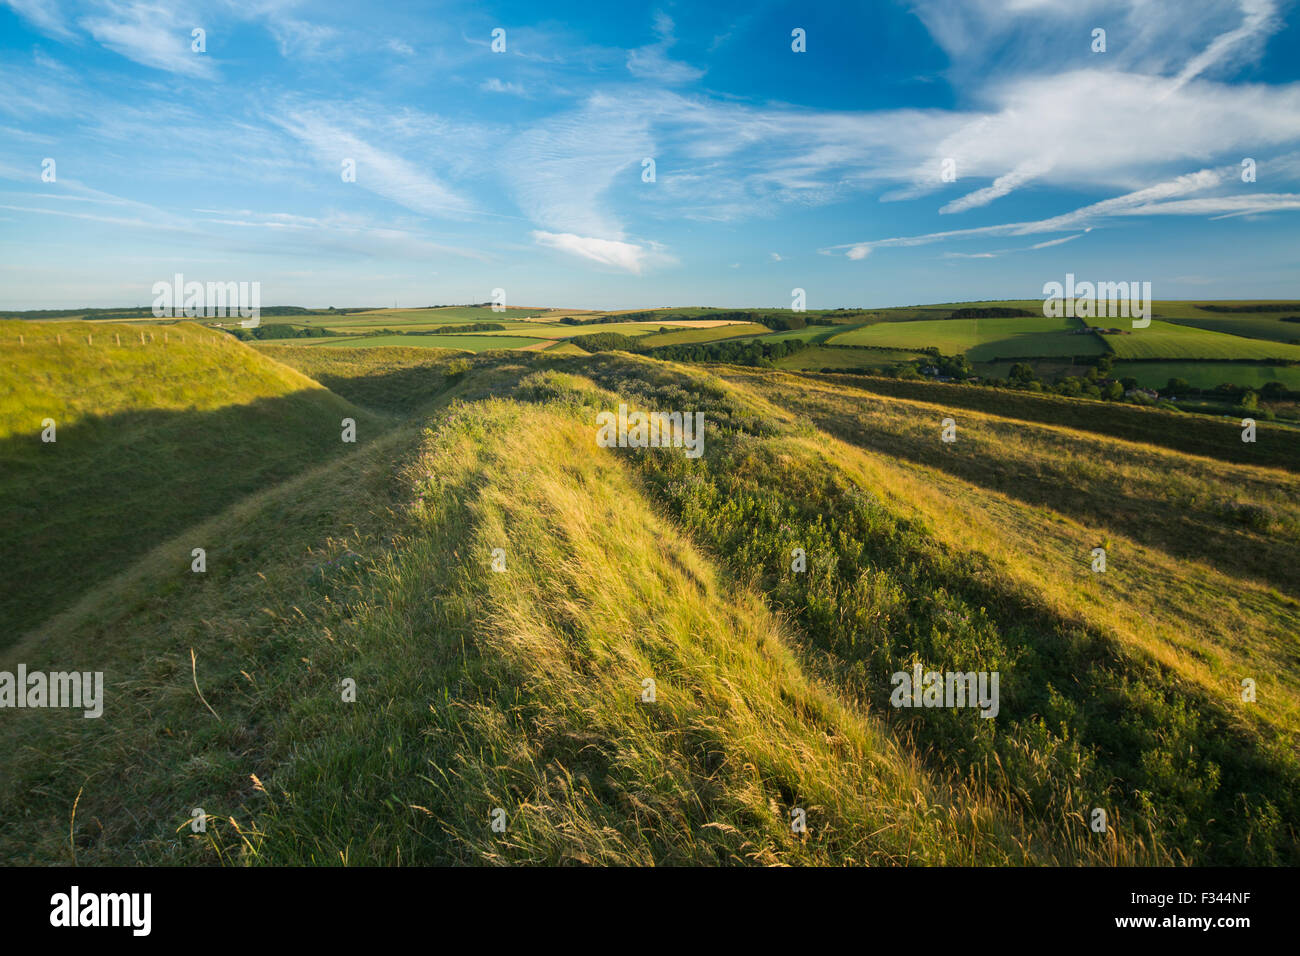 Les remparts de l'ouest Maiden Castle, une commune près de Dorchester, Dorset, England, UK Photo Stock